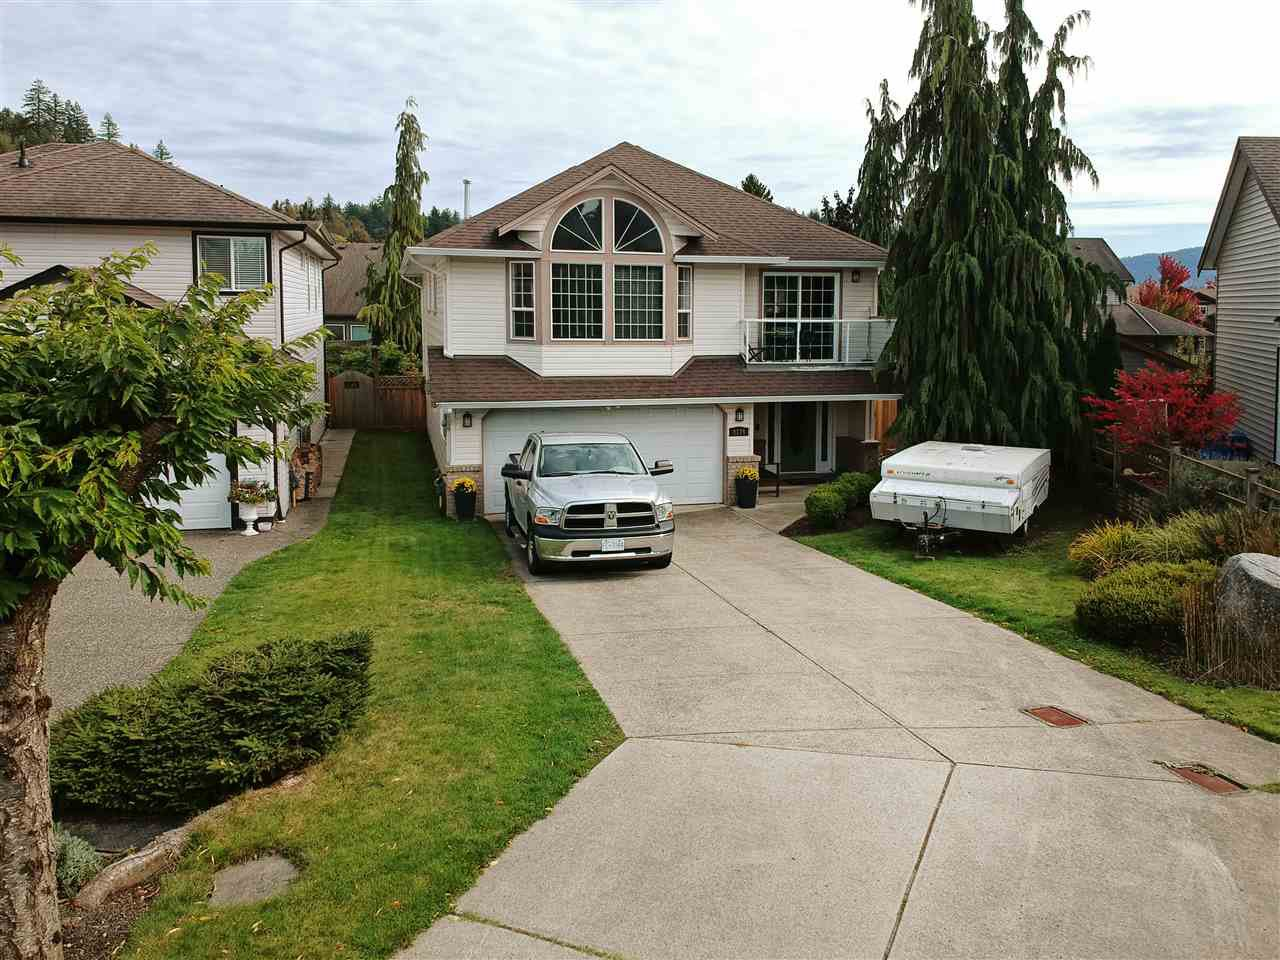 Main Photo: 8170 KUNIMOTO Court in Mission: Mission BC House for sale : MLS®# R2410251